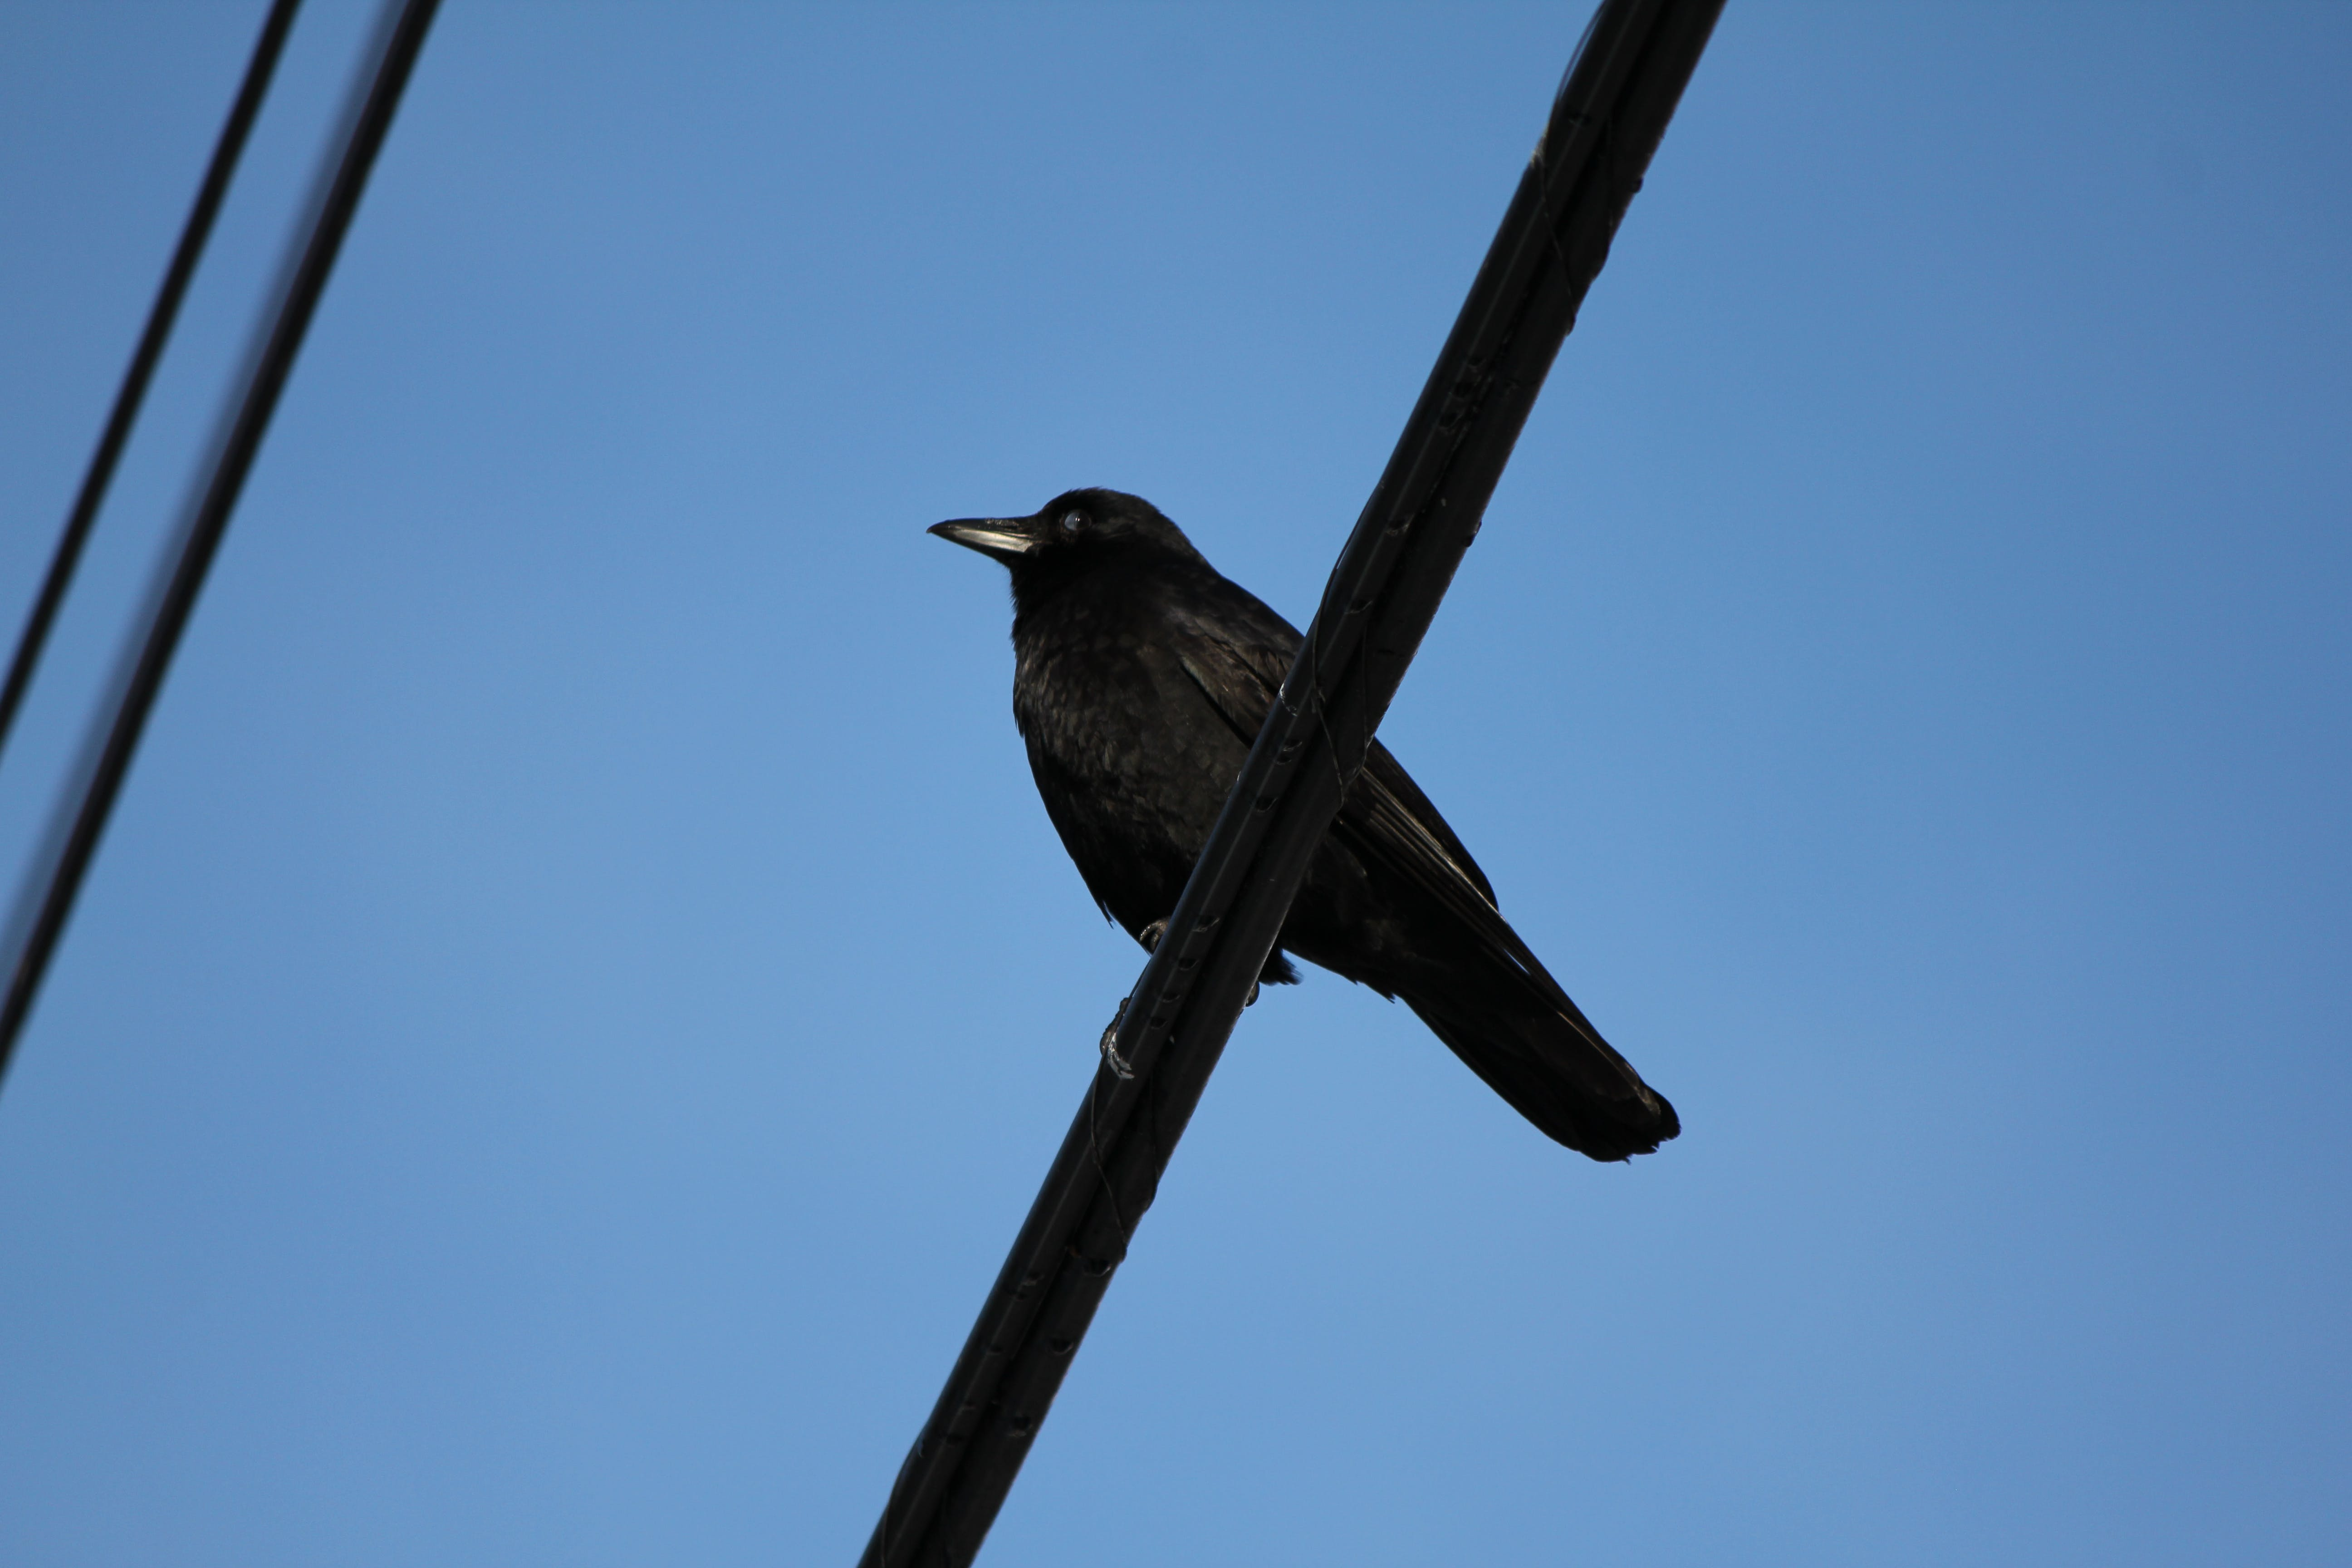 Black Crow on Cable